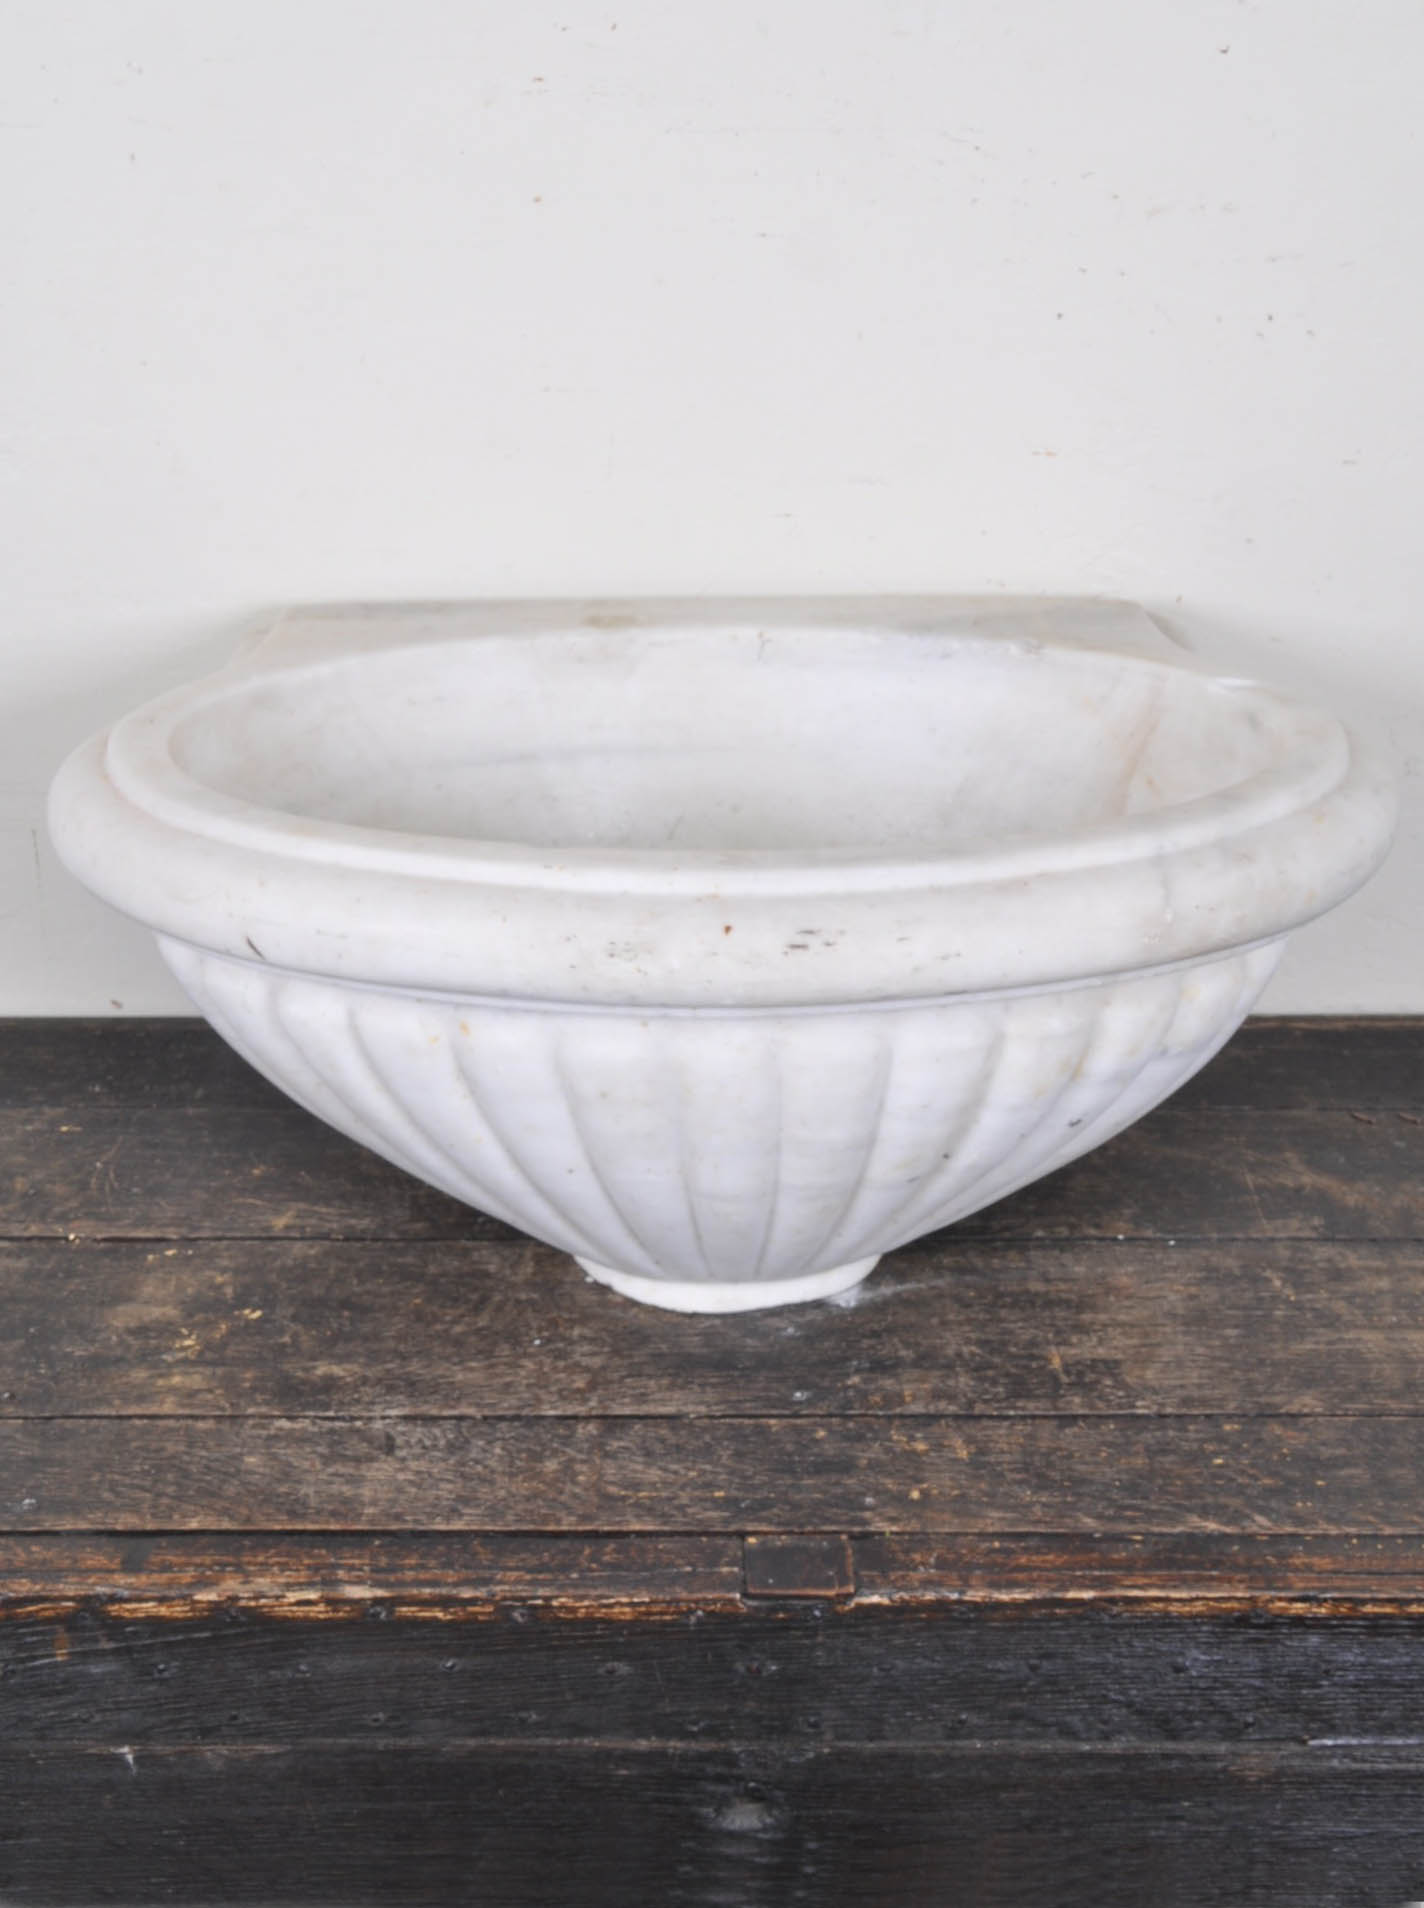 Marble Basin Antique Turkish Hand Carved Oval Marble Sink Basin With Scalloped Sides